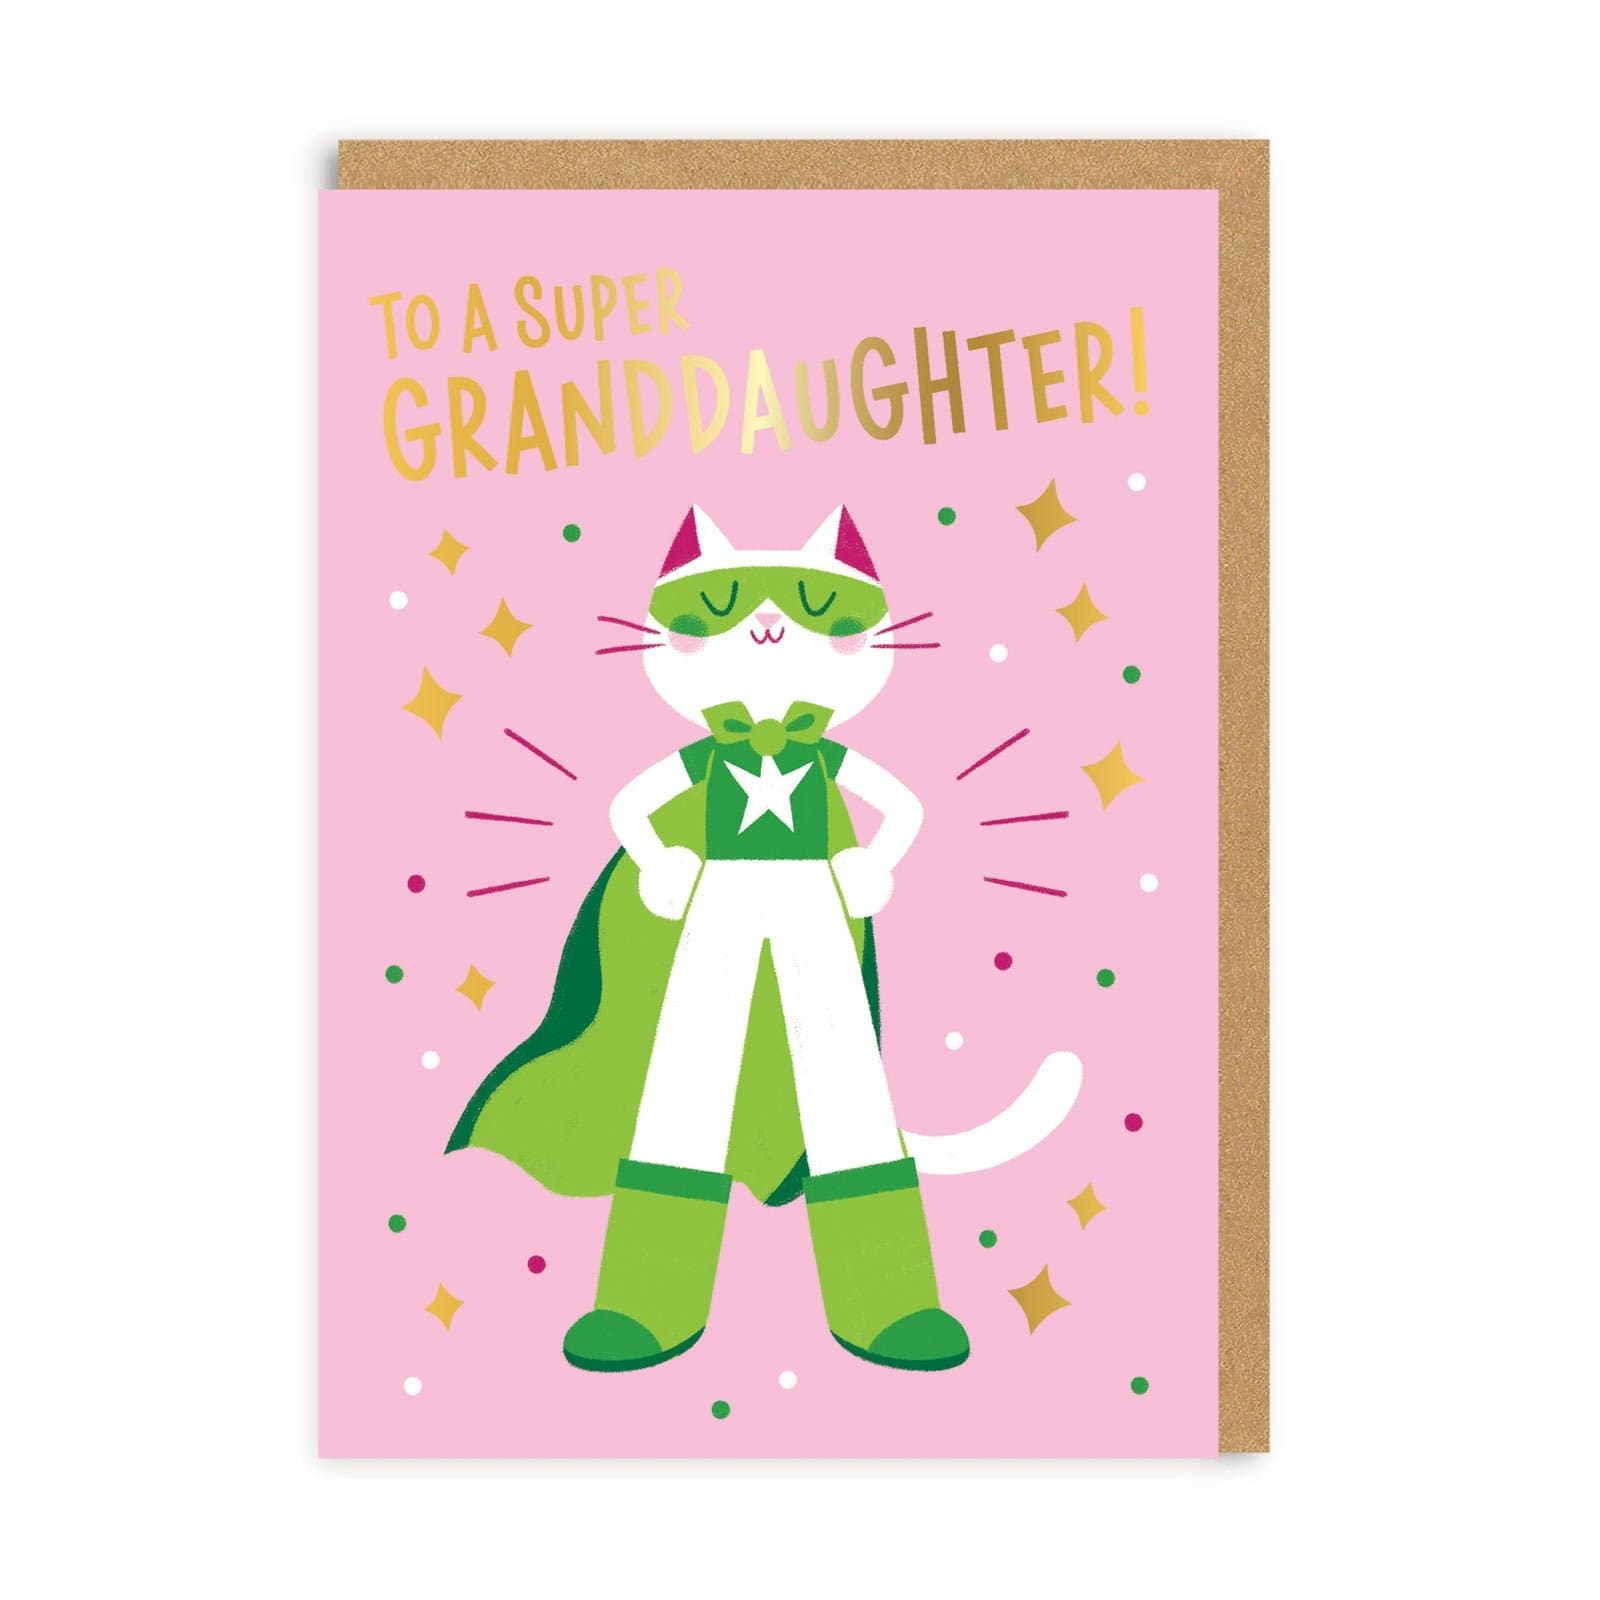 Granddaughter Super Greeting Card